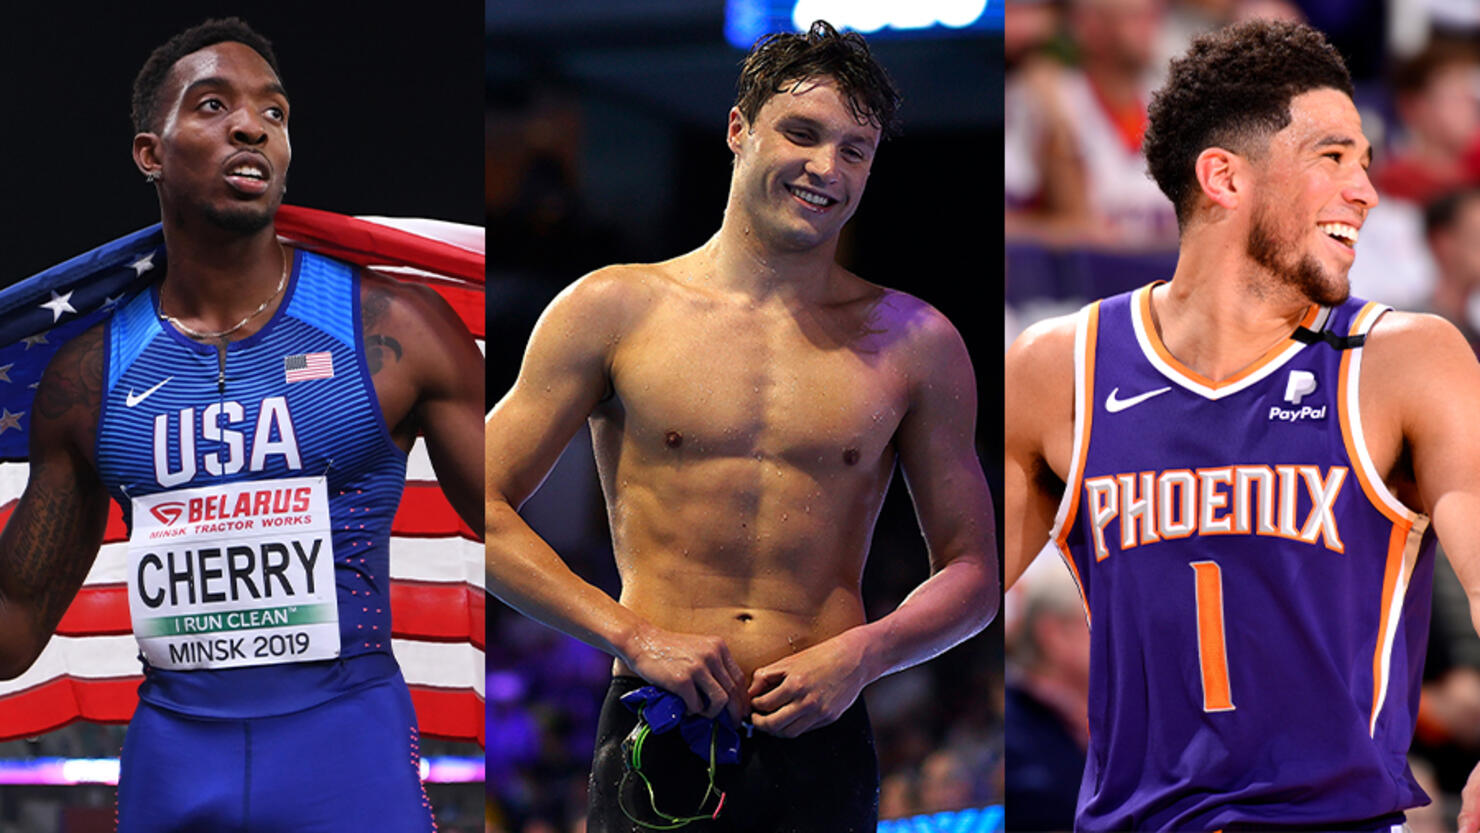 Athletes hottest 'Didn't realise